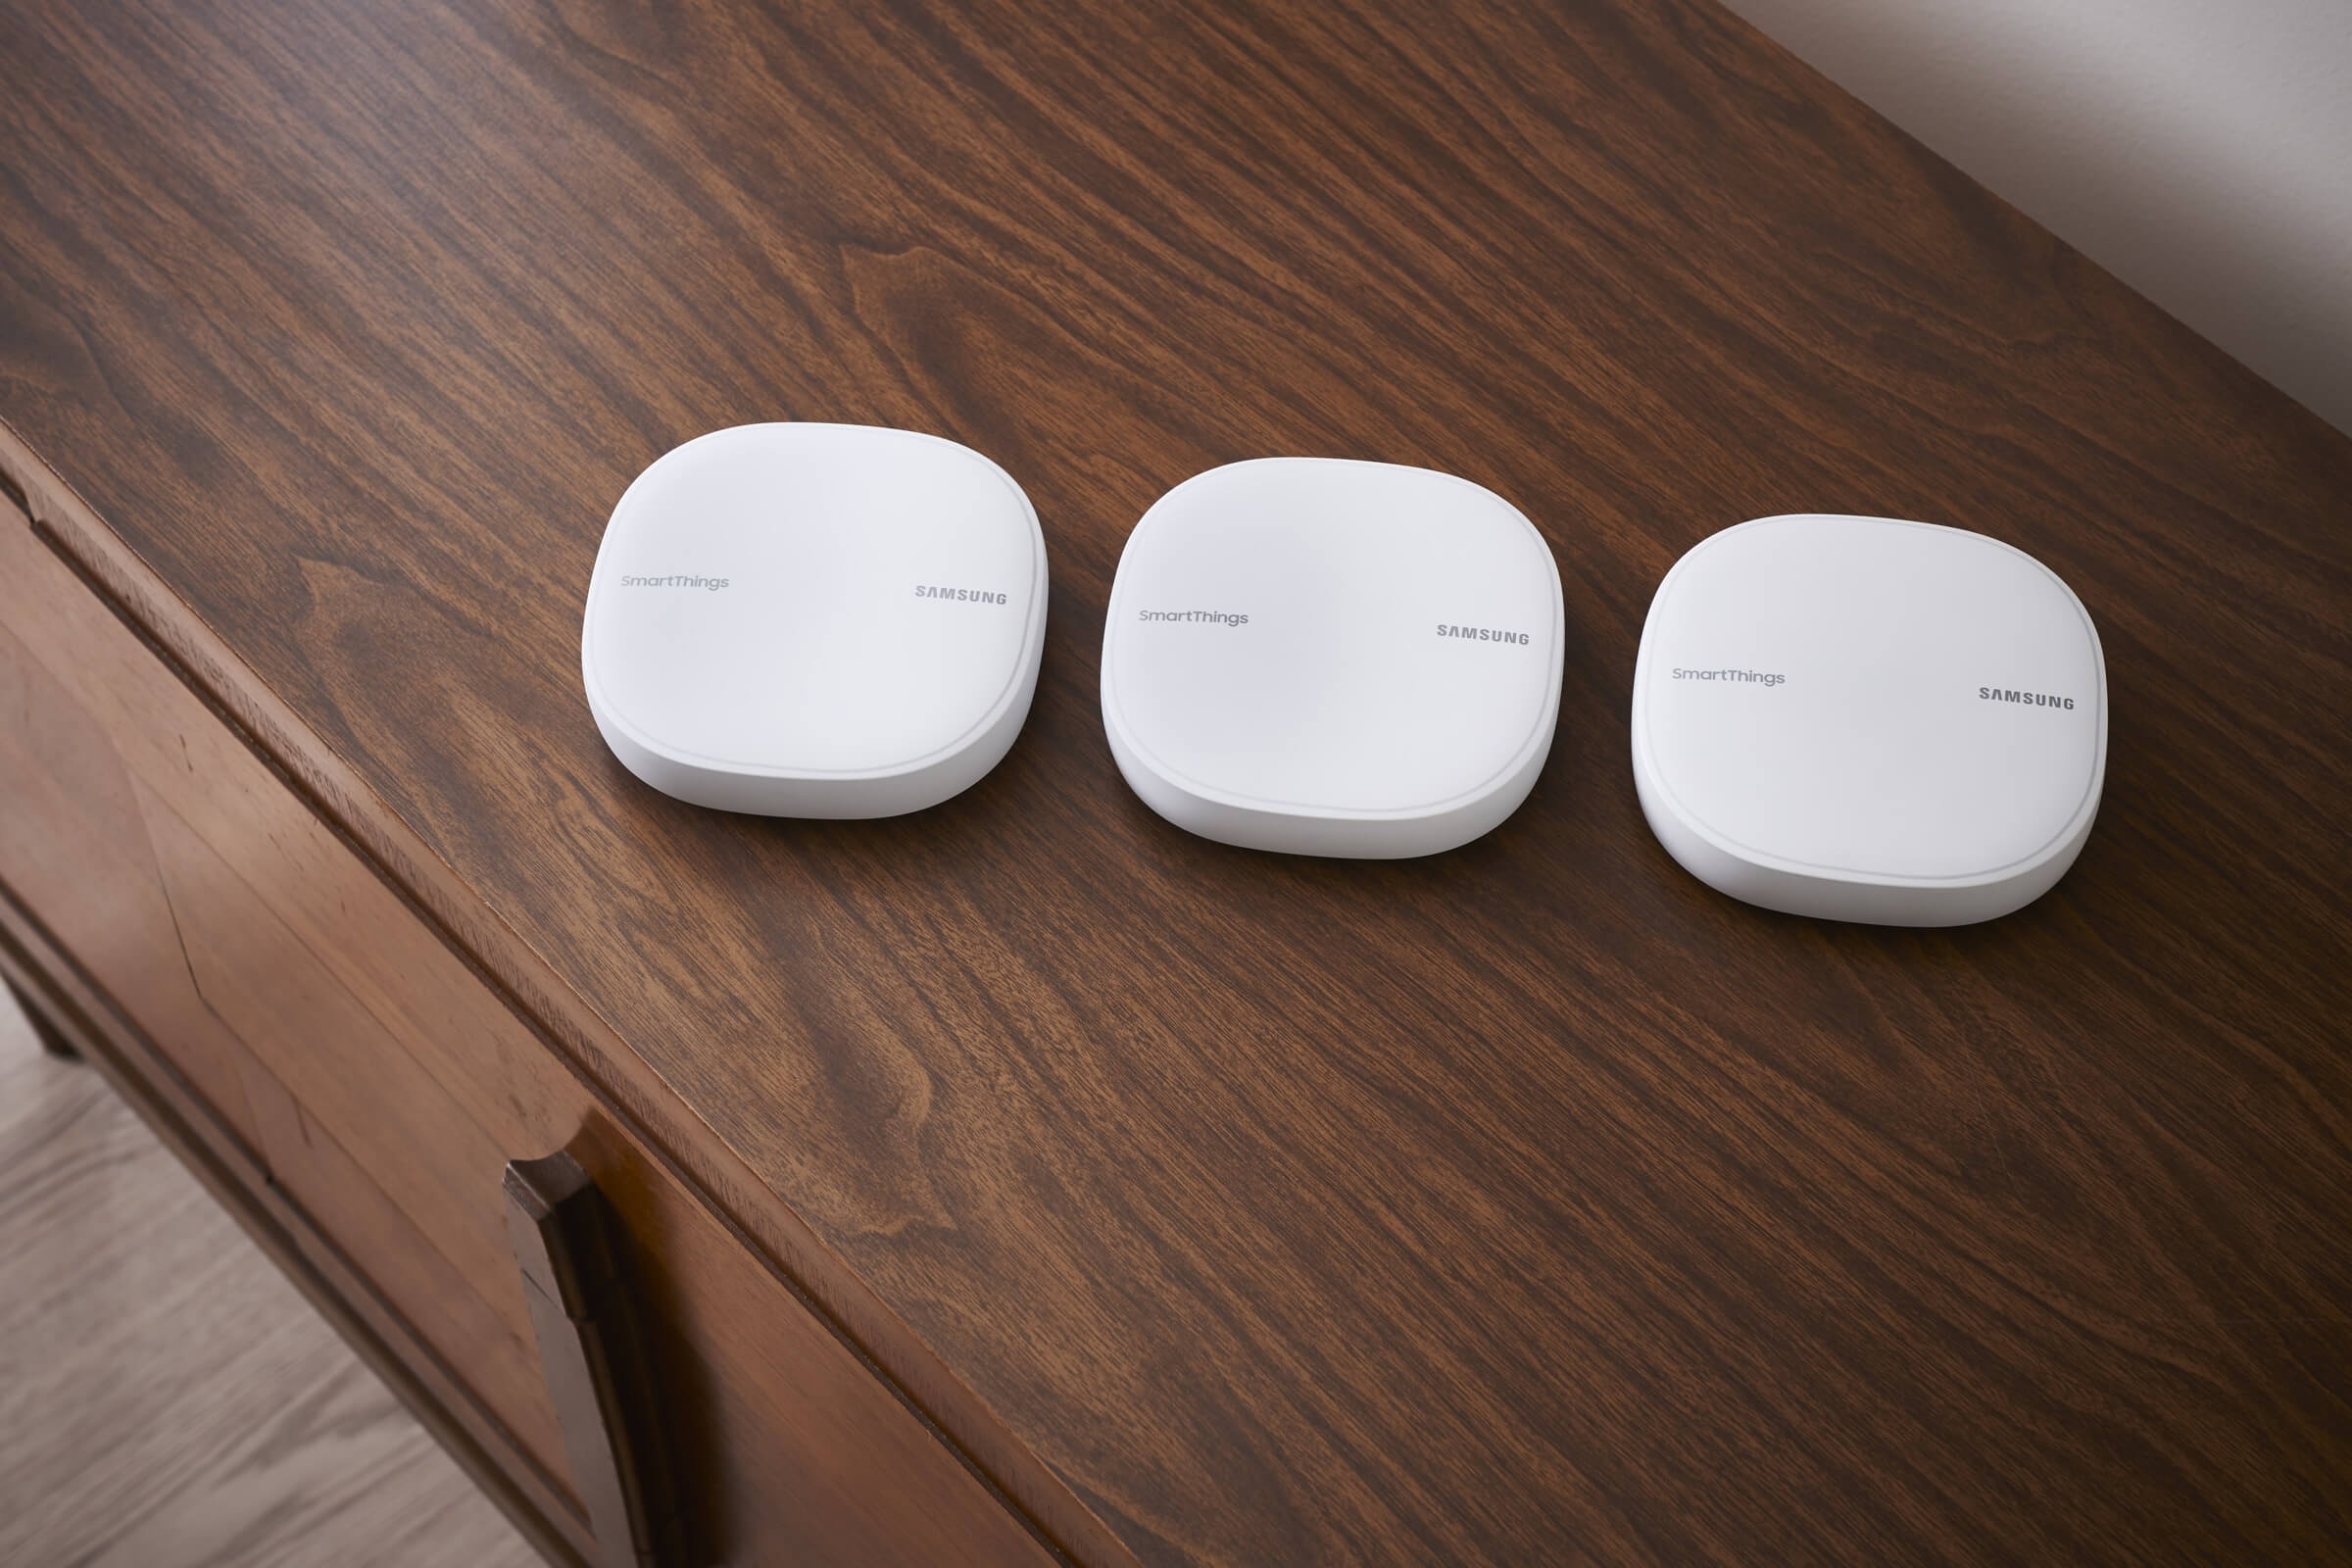 Samsung adds Plume's mesh WiFi tech to its SmartThings WiFi router